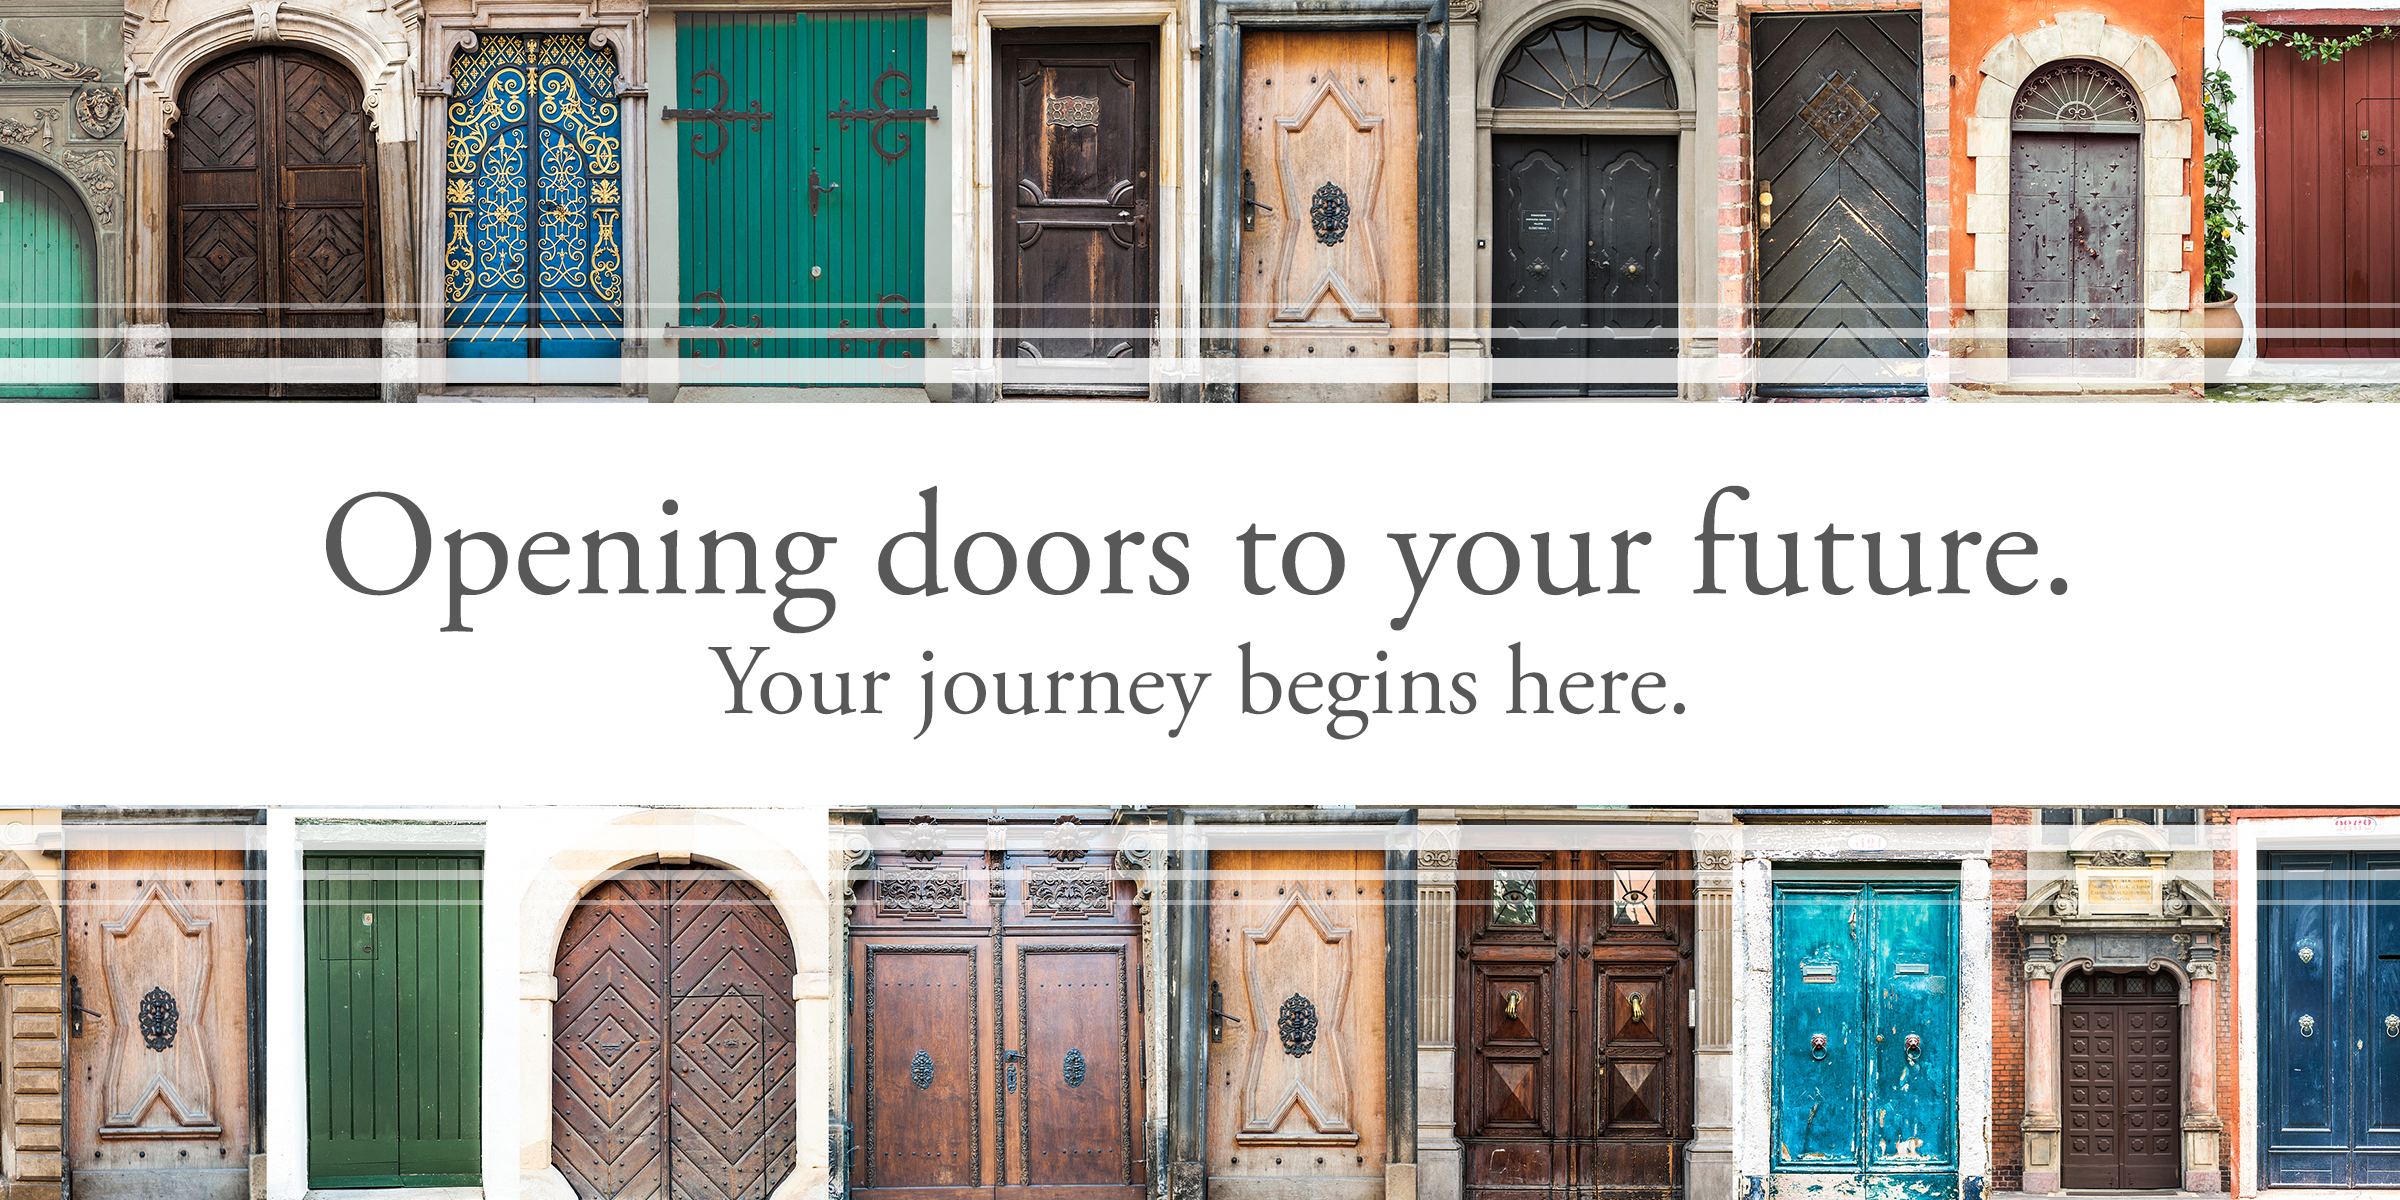 Opening doors to your future